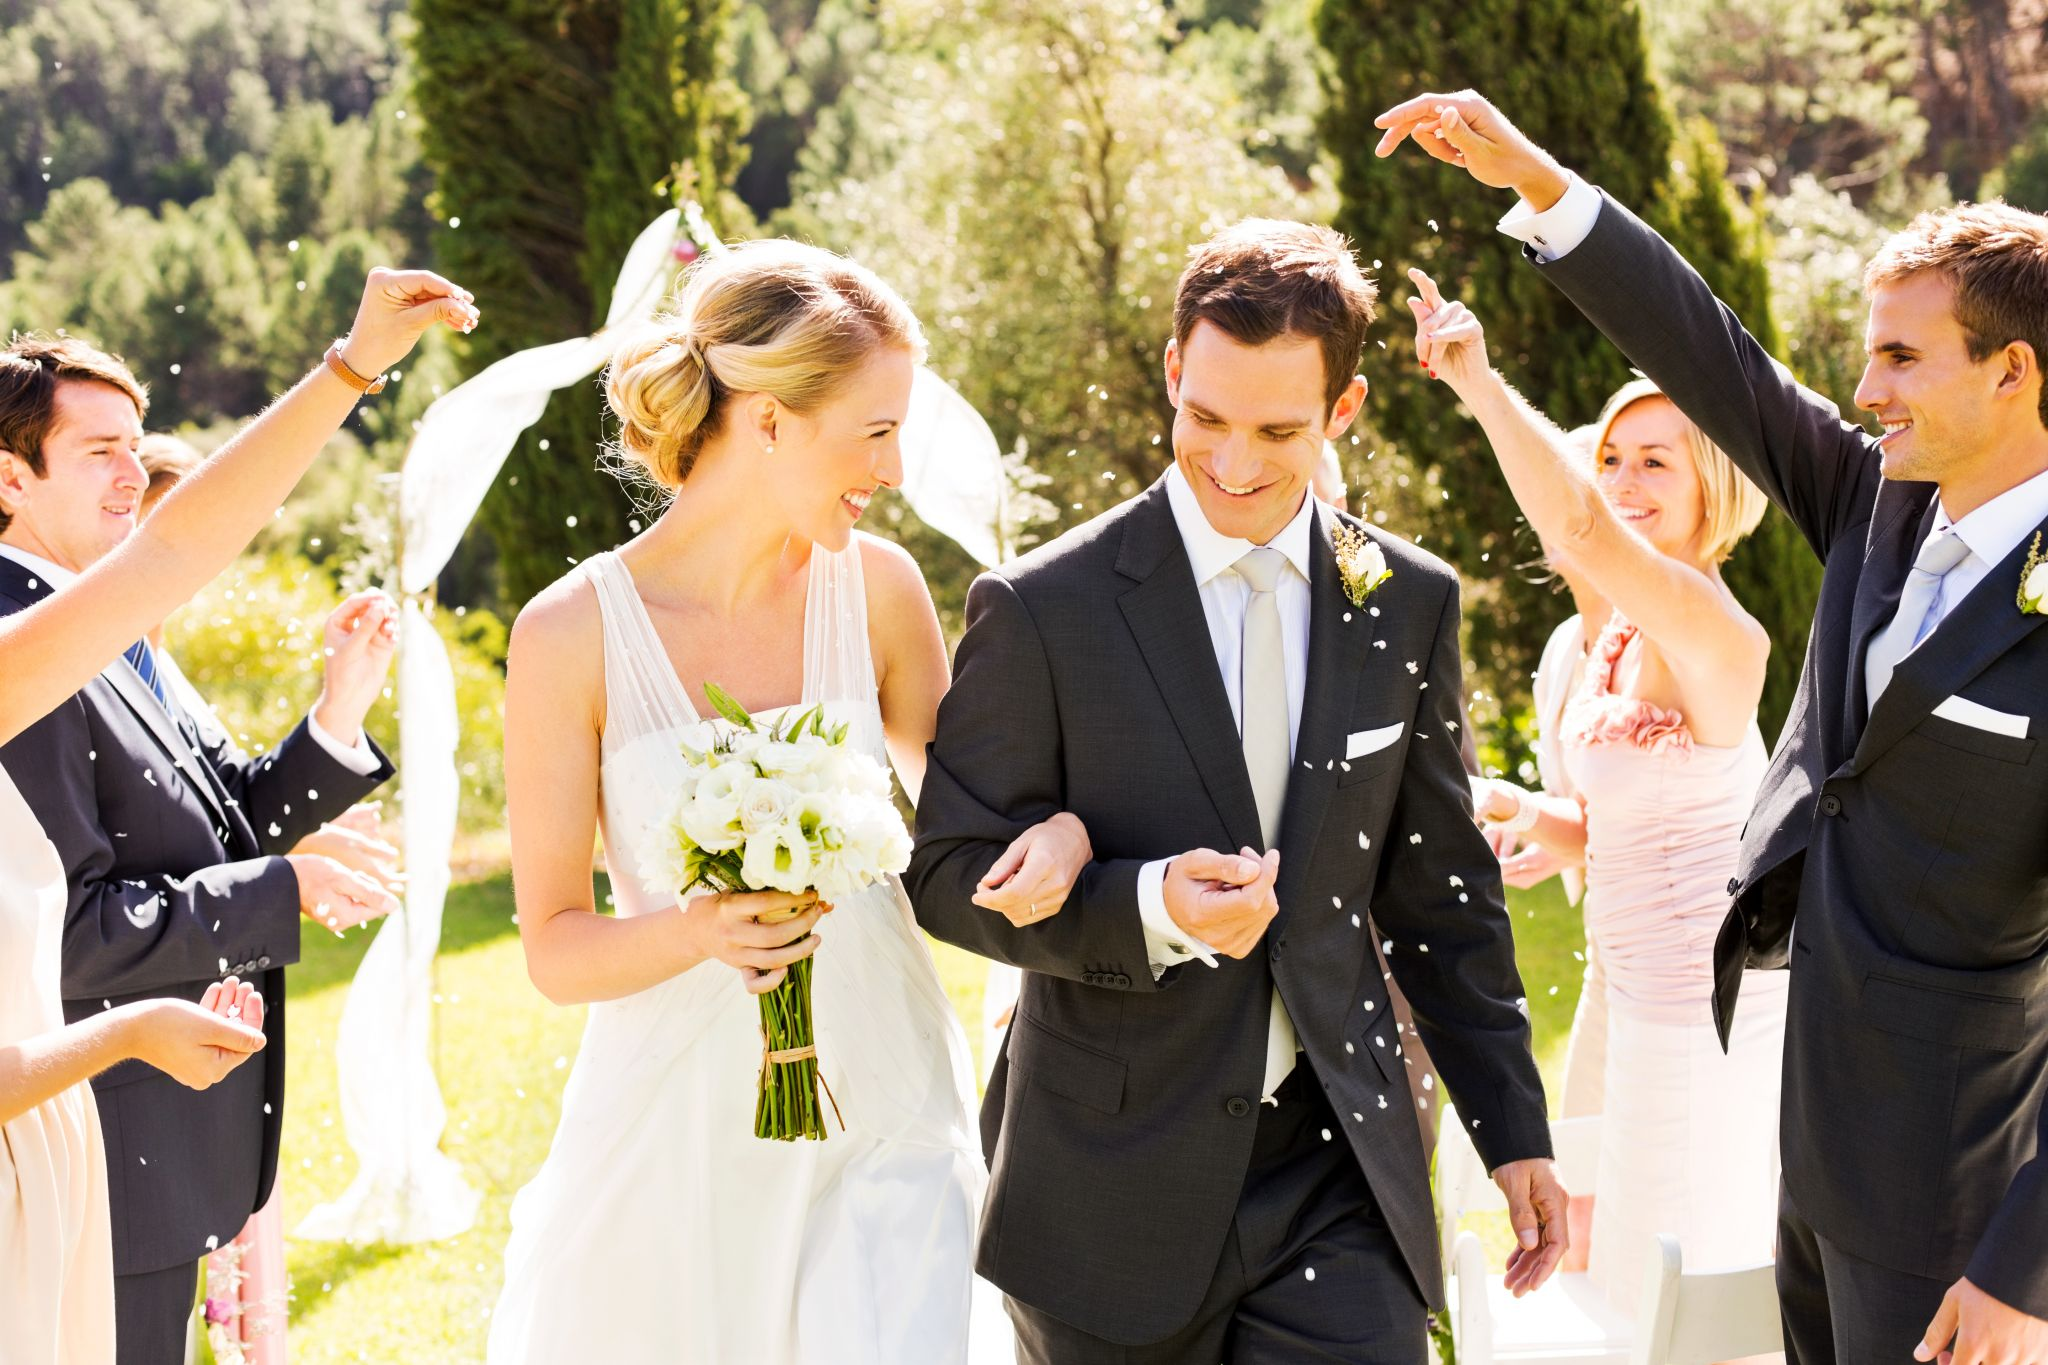 14 wedding traditions you'll find only in the South